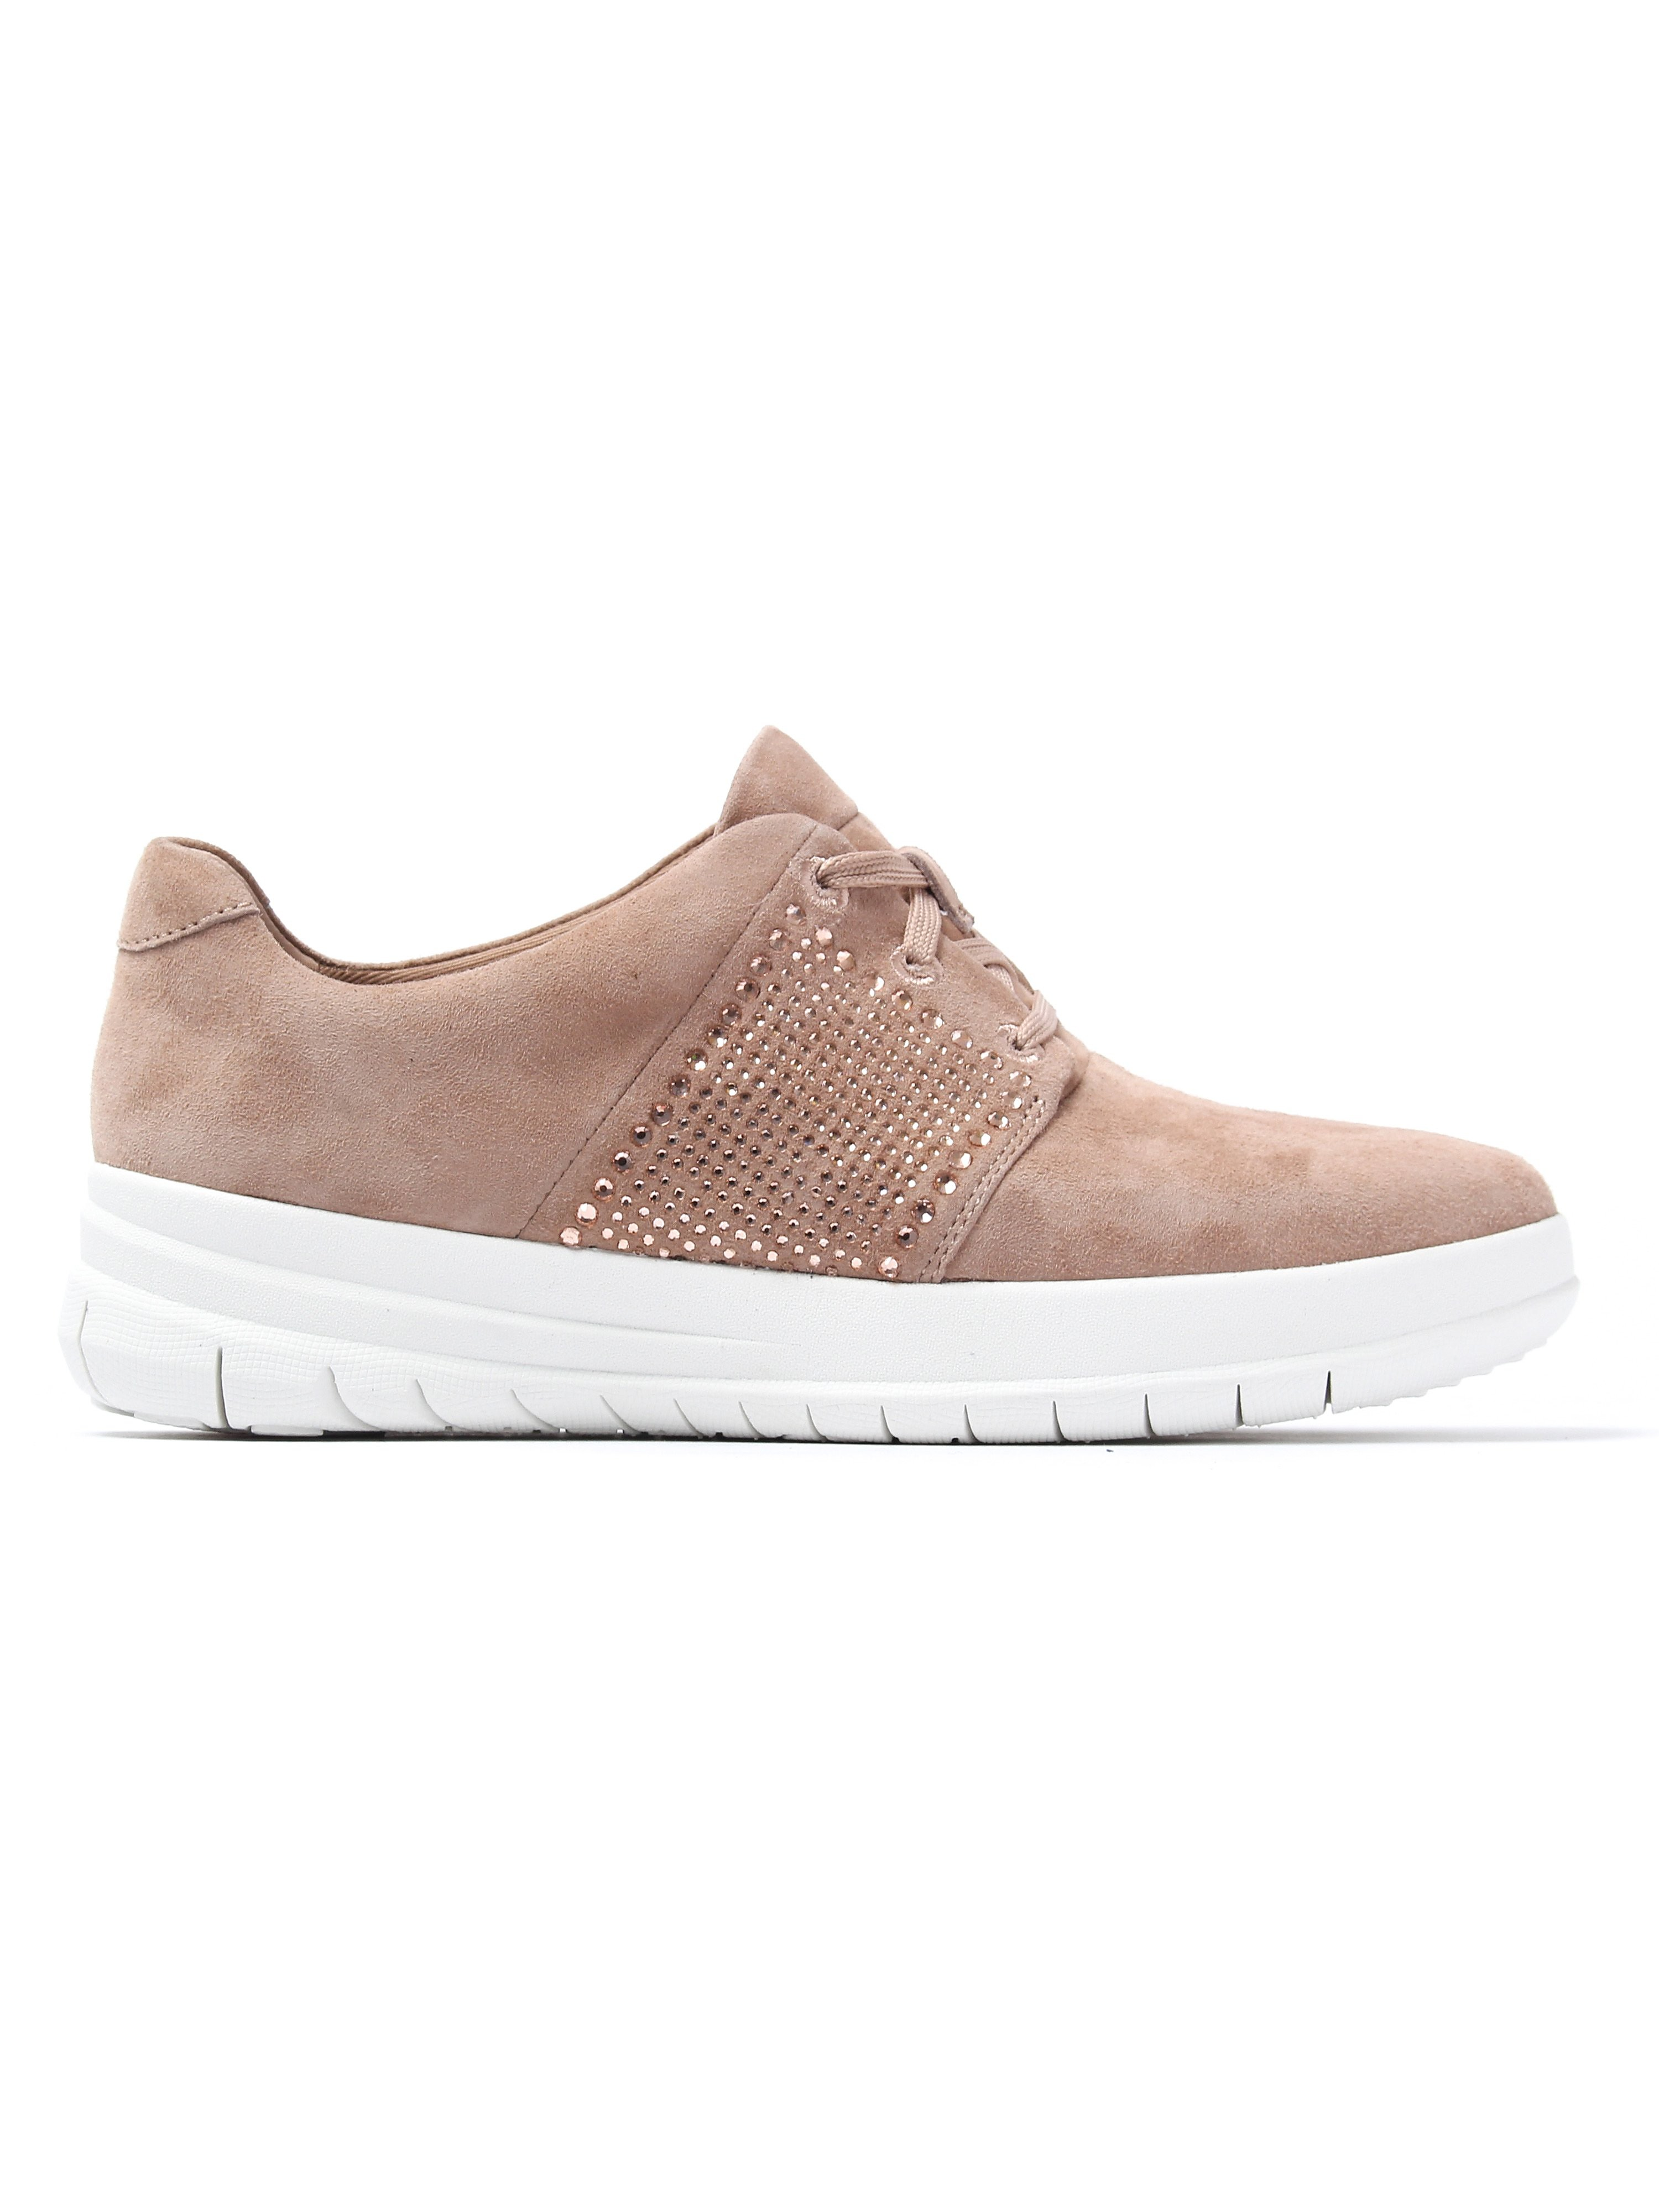 FitFlop Women's Sporty-Pop X-Crystal Trainers - Mocha